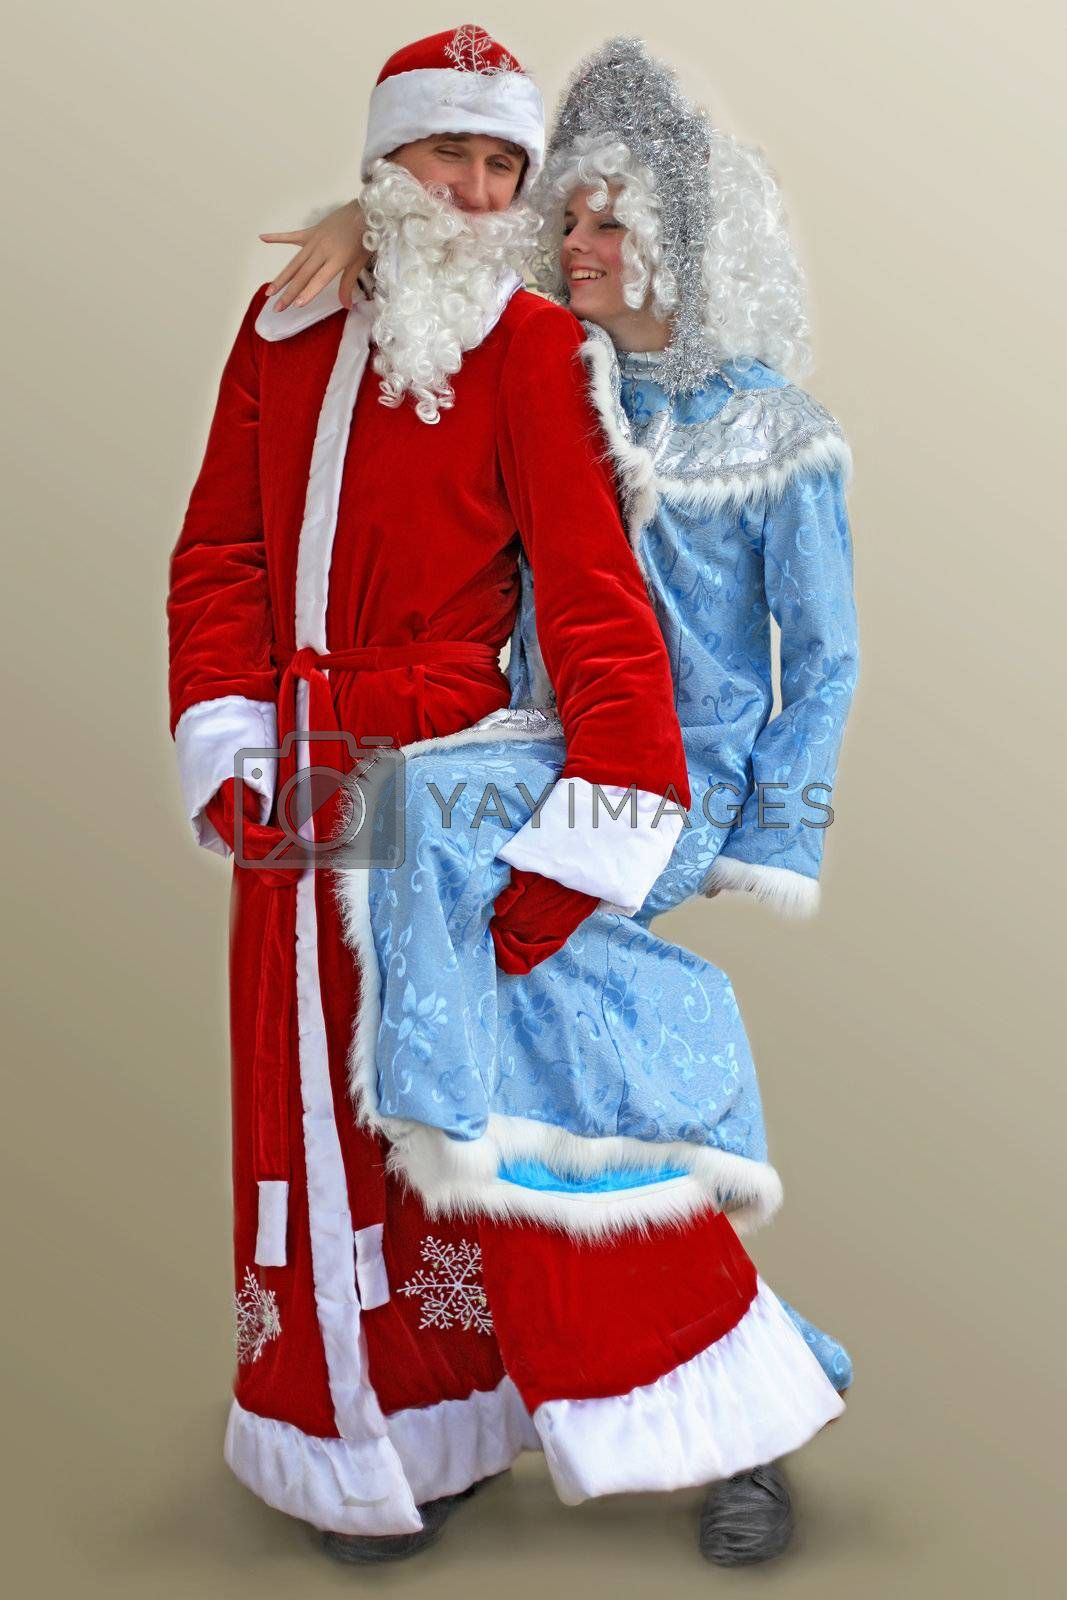 Santa Claus and Snow Maiden are having fun on holiday, greeting the New Year